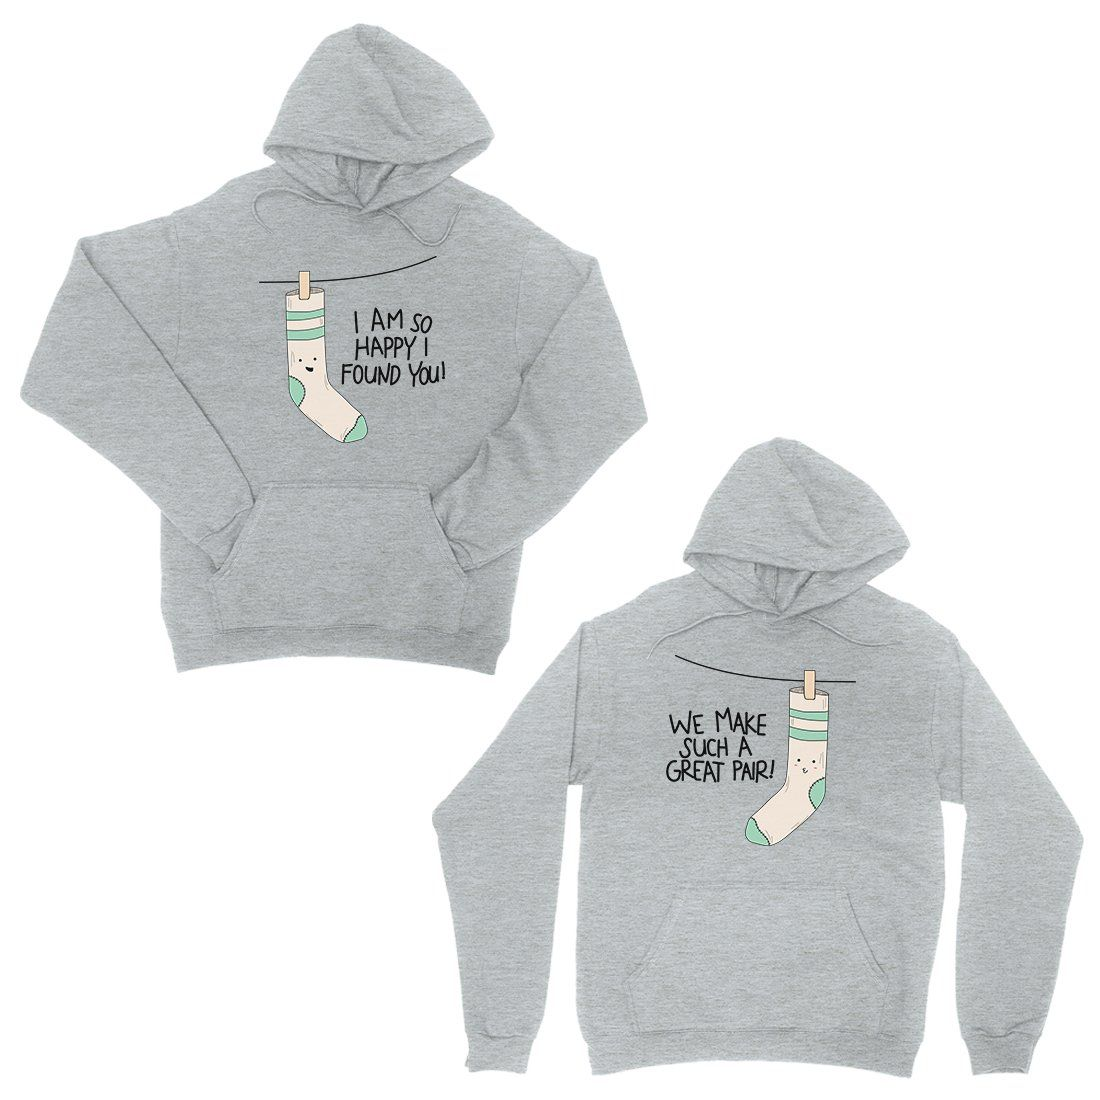 Socks Great Pair Grey Matching Couple Hoodies For Anniversary Gift Trivoshop In 2021 Couples Hoodies Matching Hoodies For Couples Matching Hoodies [ 1100 x 1100 Pixel ]